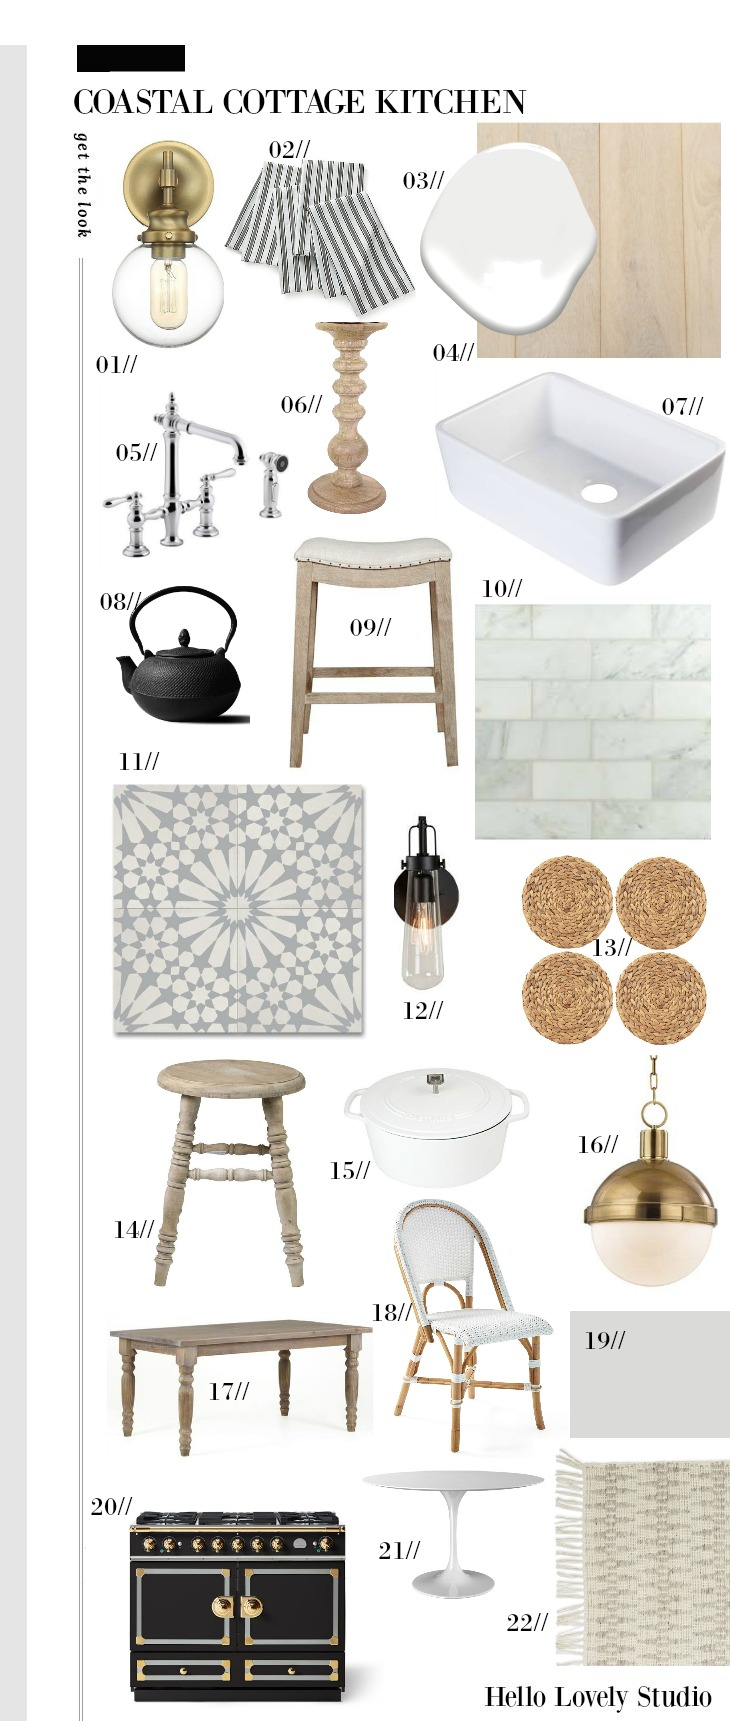 Get the Look Coastal Cottage Kitchen mood board on Hello Lovely Studio.